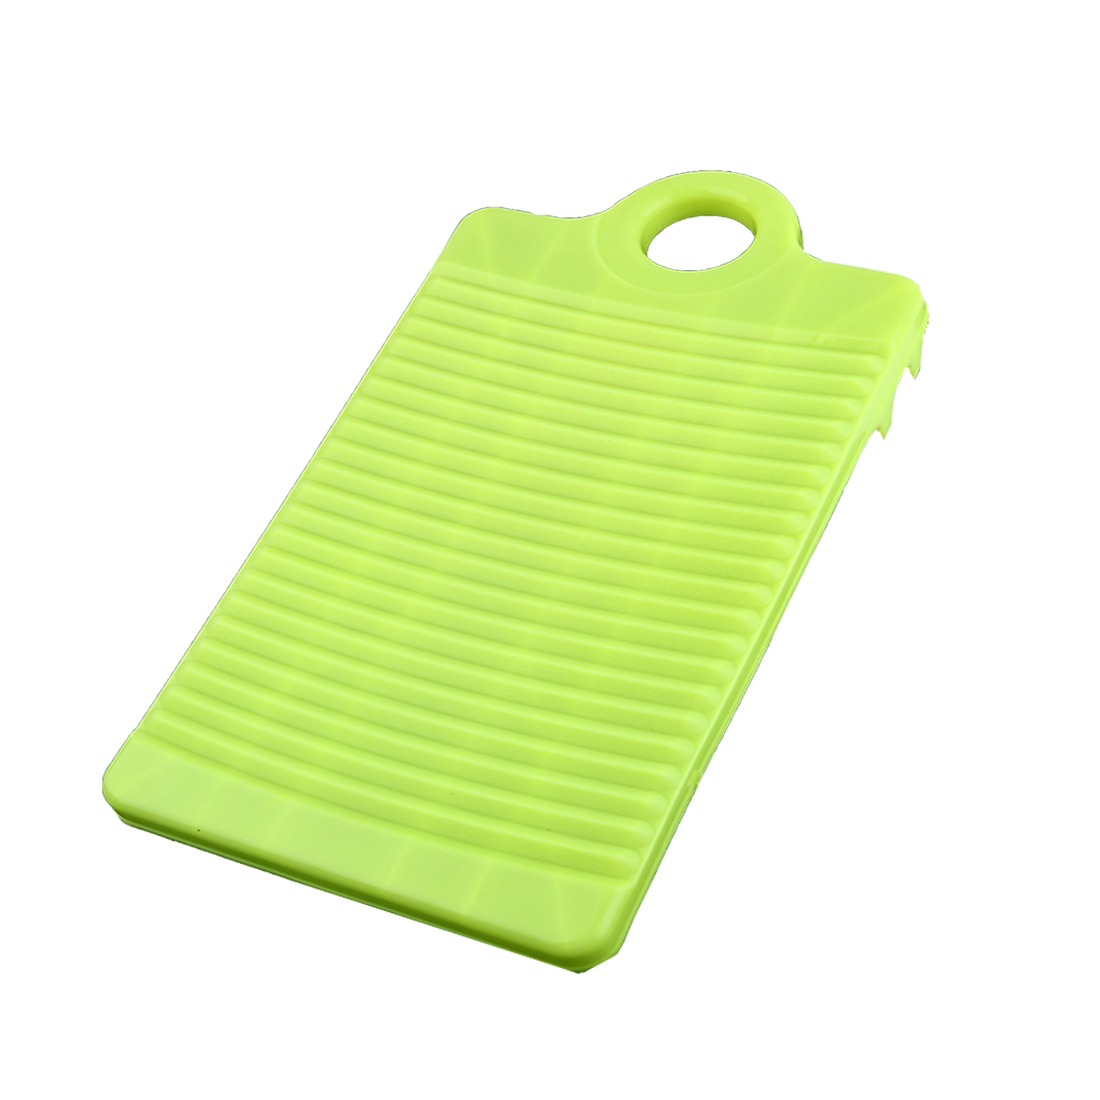 Household Plastic Washboard Clothes Washing Board 315mm Length Light Yellow